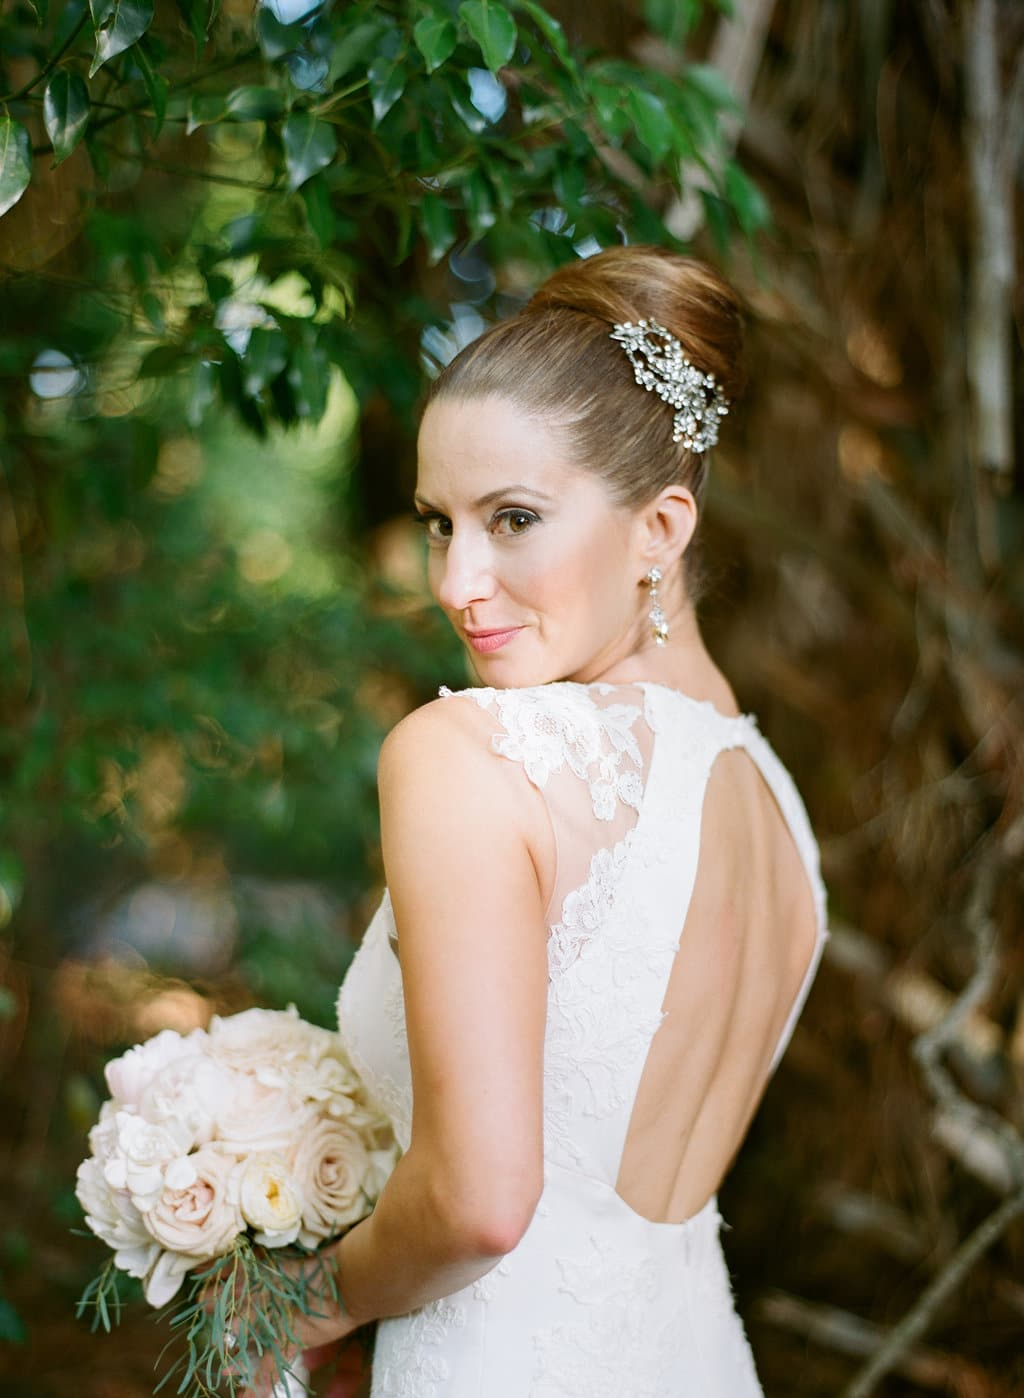 Bride with backless gown looking over shoulder